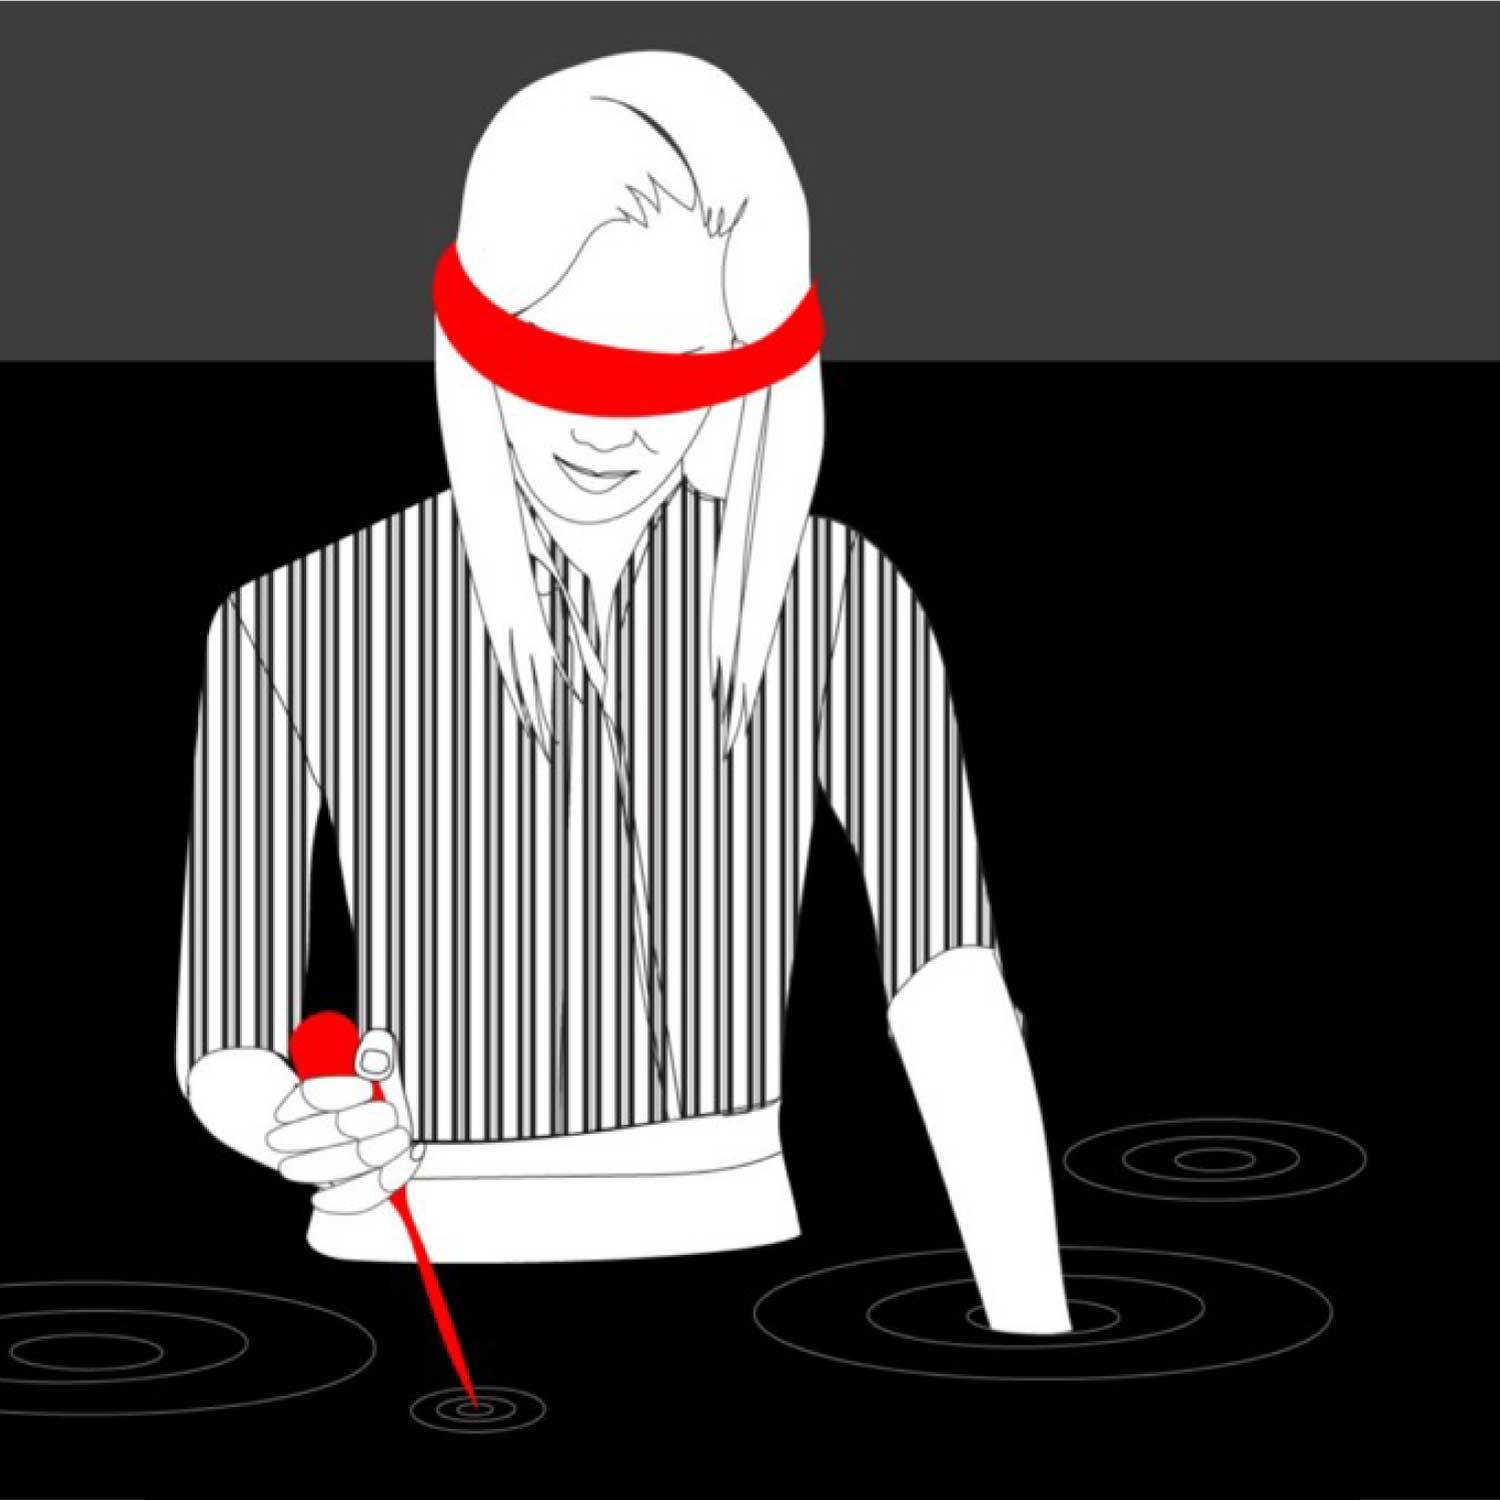 Why startups should stop searching for their business model by taking stabs in the dark...